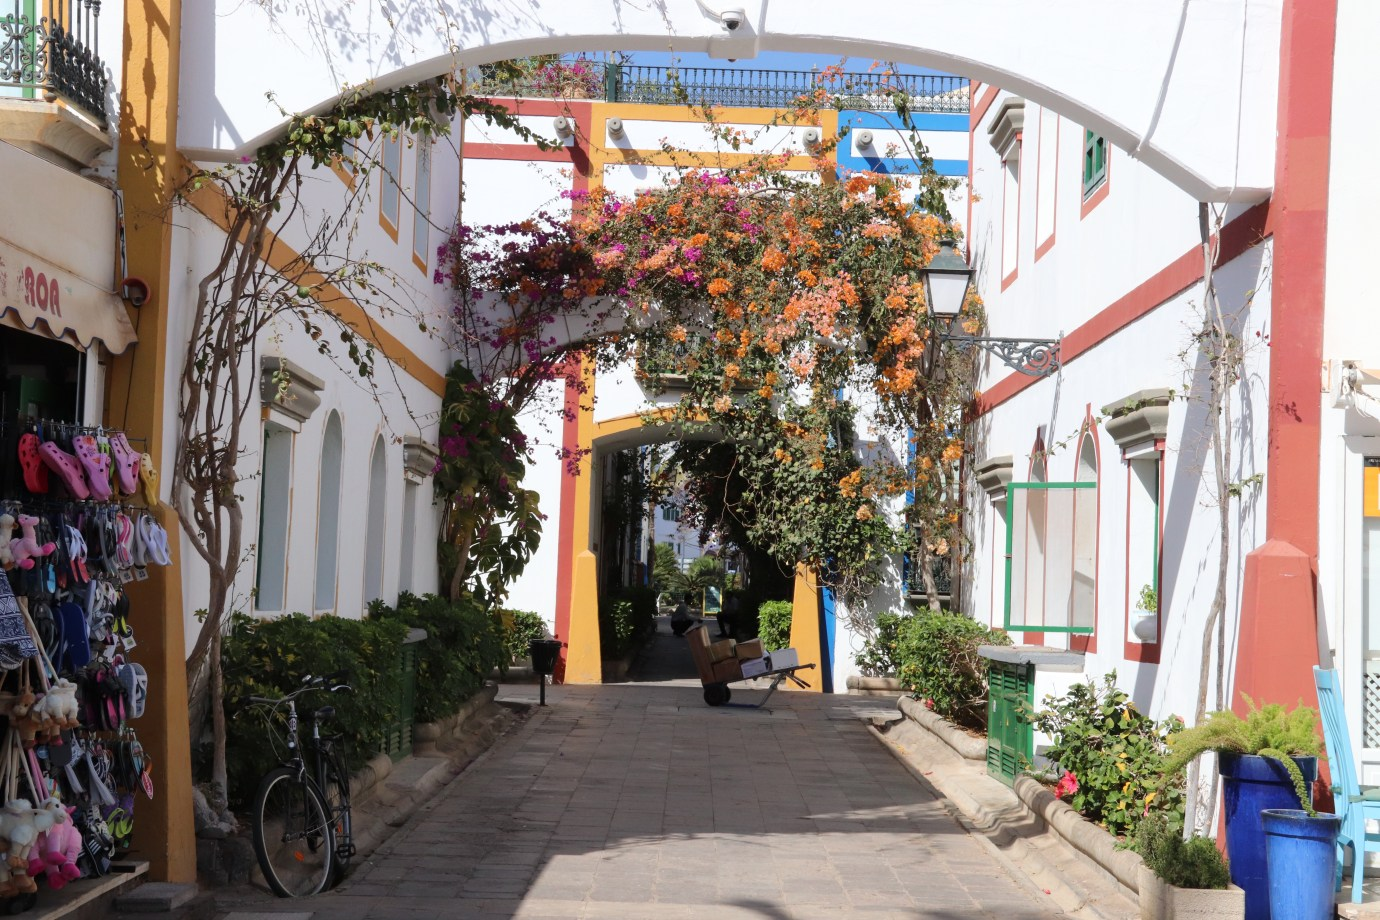 Peurto de Mogan is one of Gran Canarias prettiest resorted - coloured flowers climb the walls outside apartments buildings.